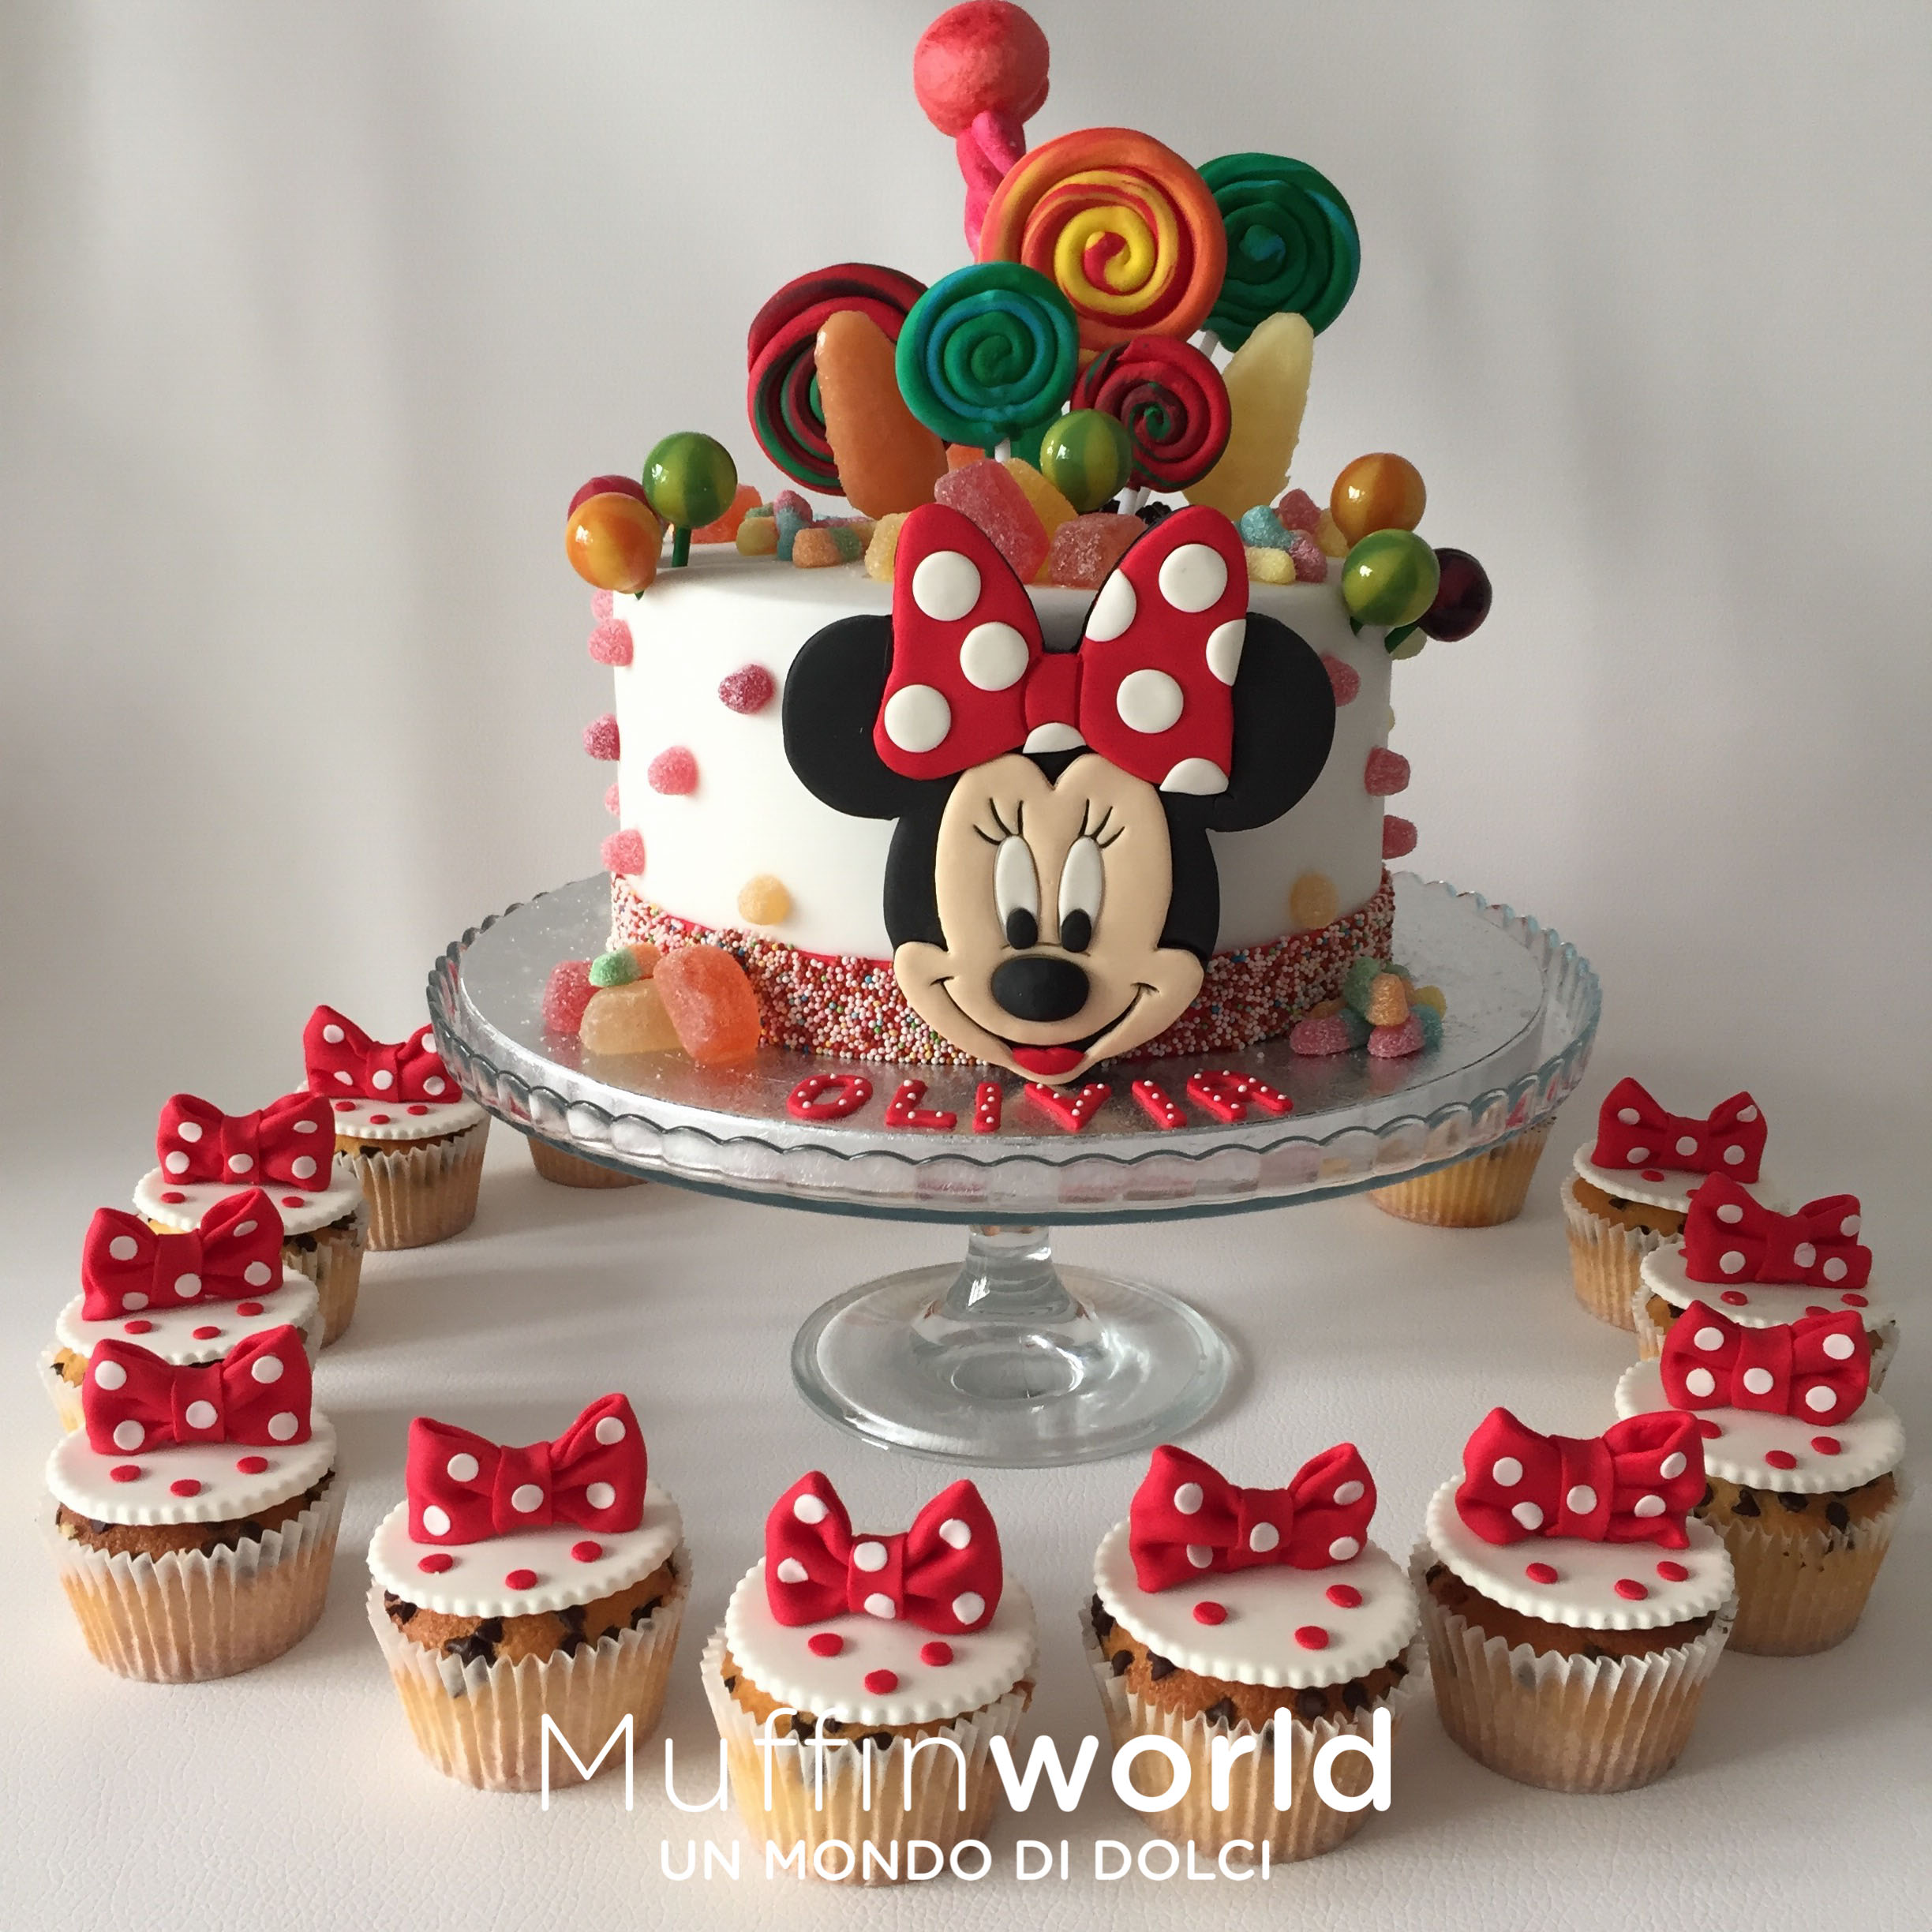 Popolare Torte Decorate - Muffinworld HA77